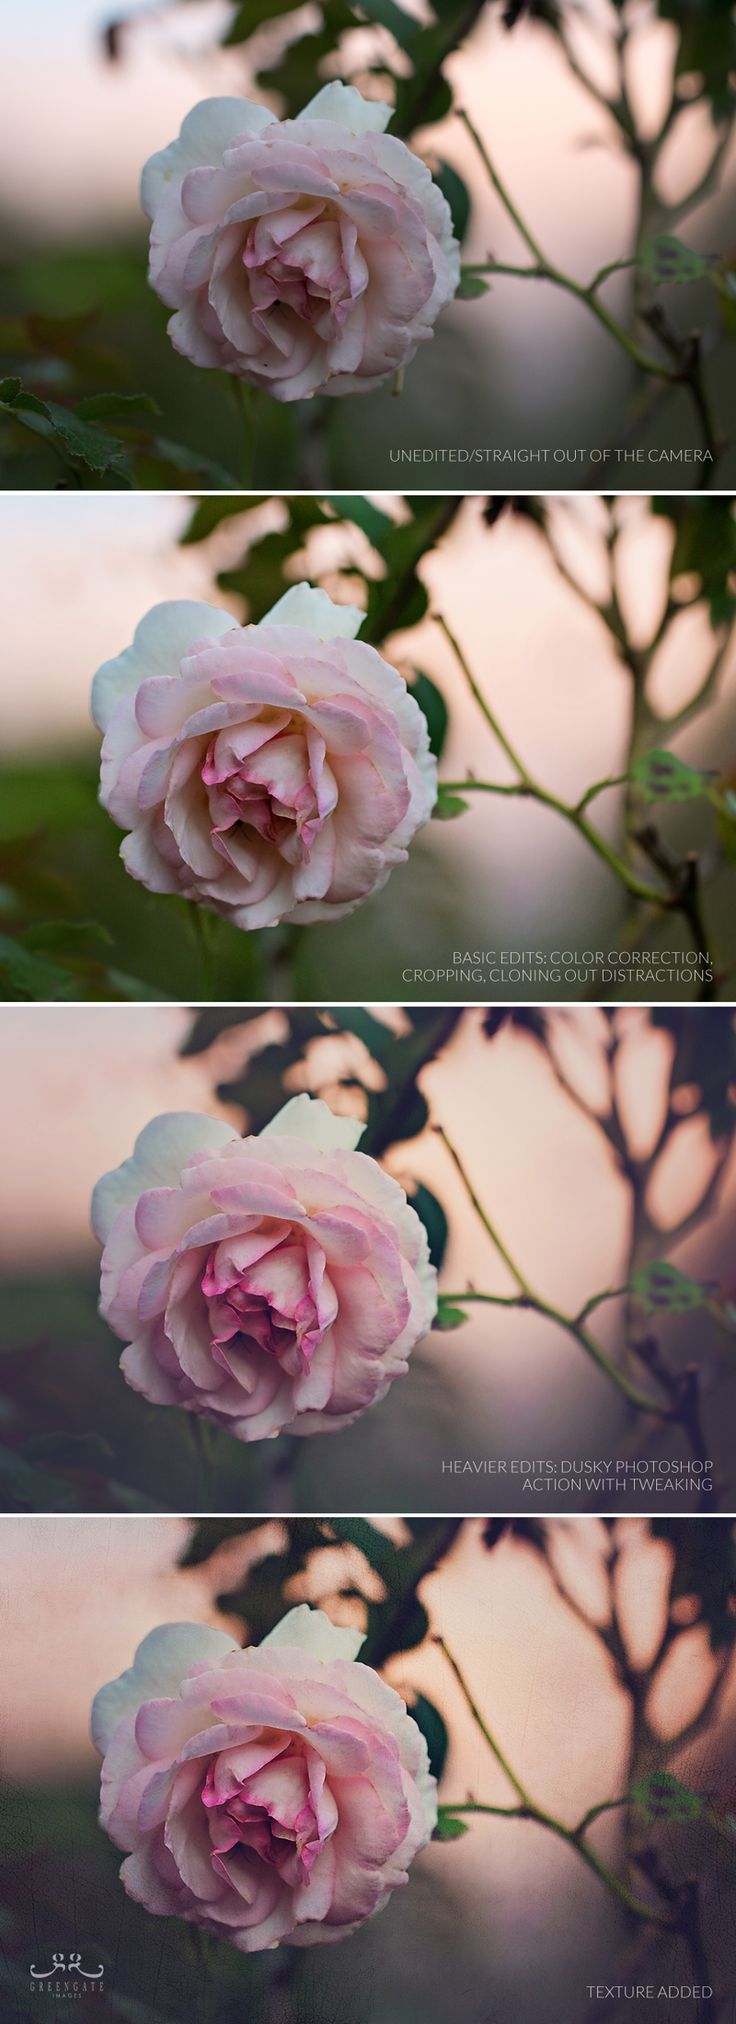 Photo edits evolution. Before and after - cropping, color correction, actions, texture.